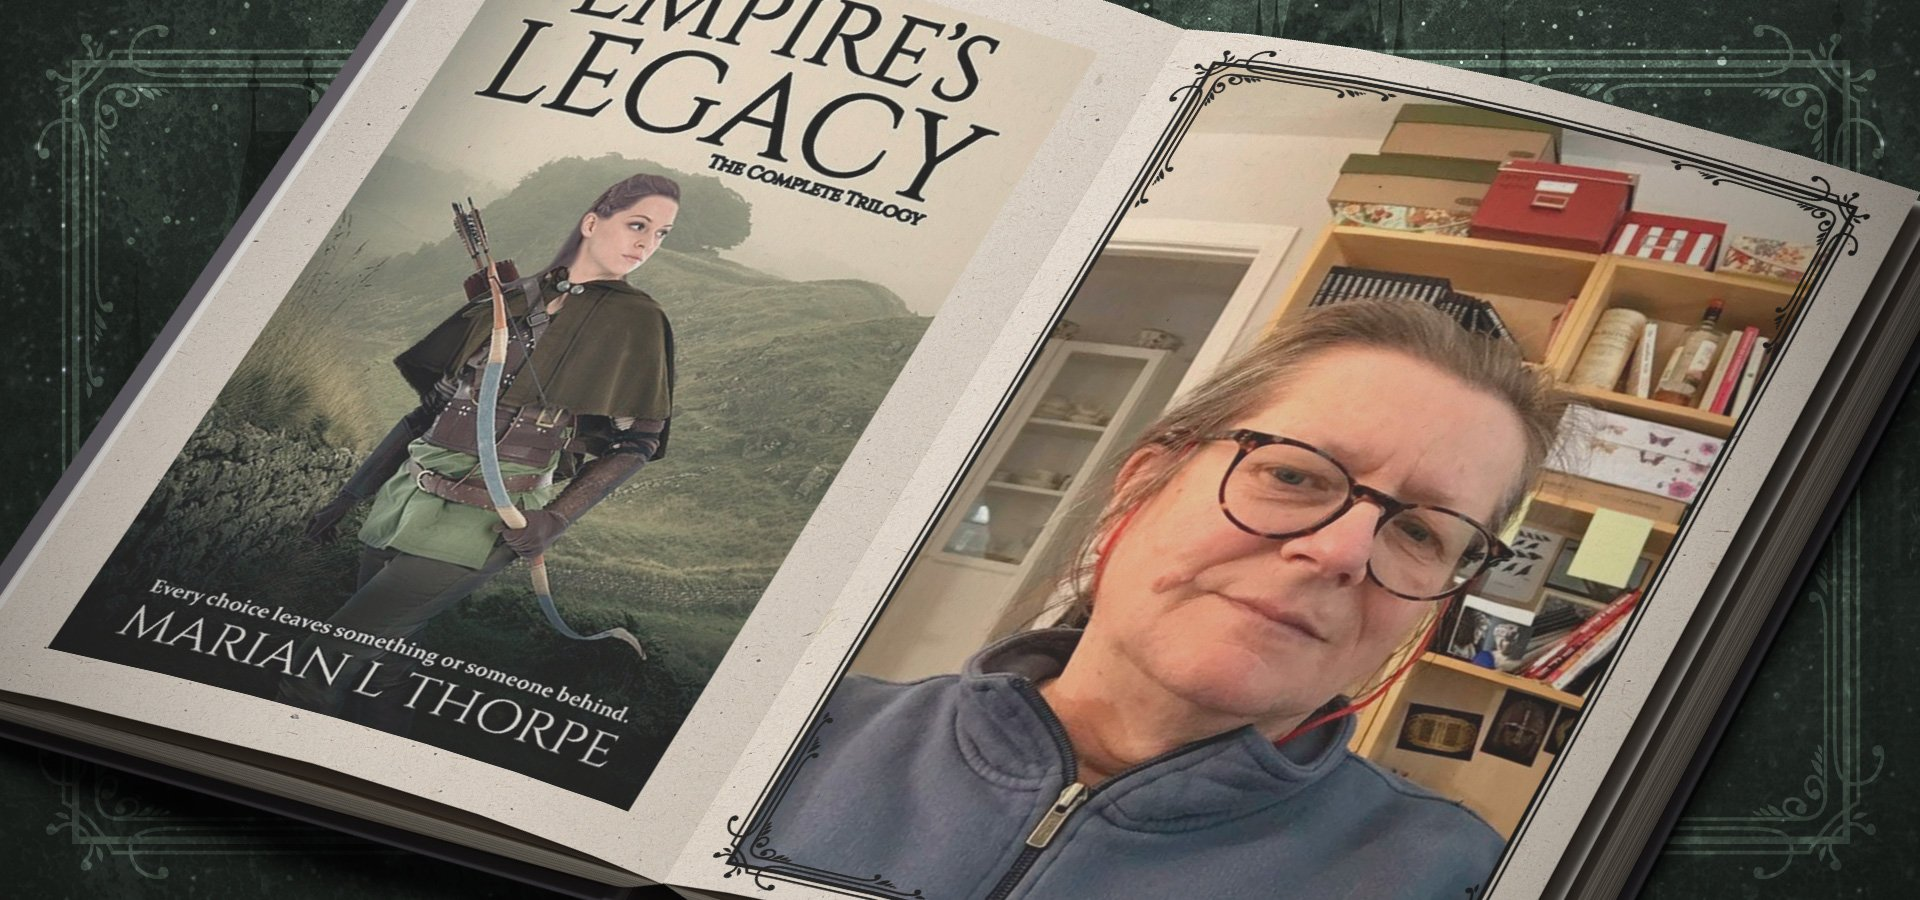 Empire's Legacy by Marian L Thorpe